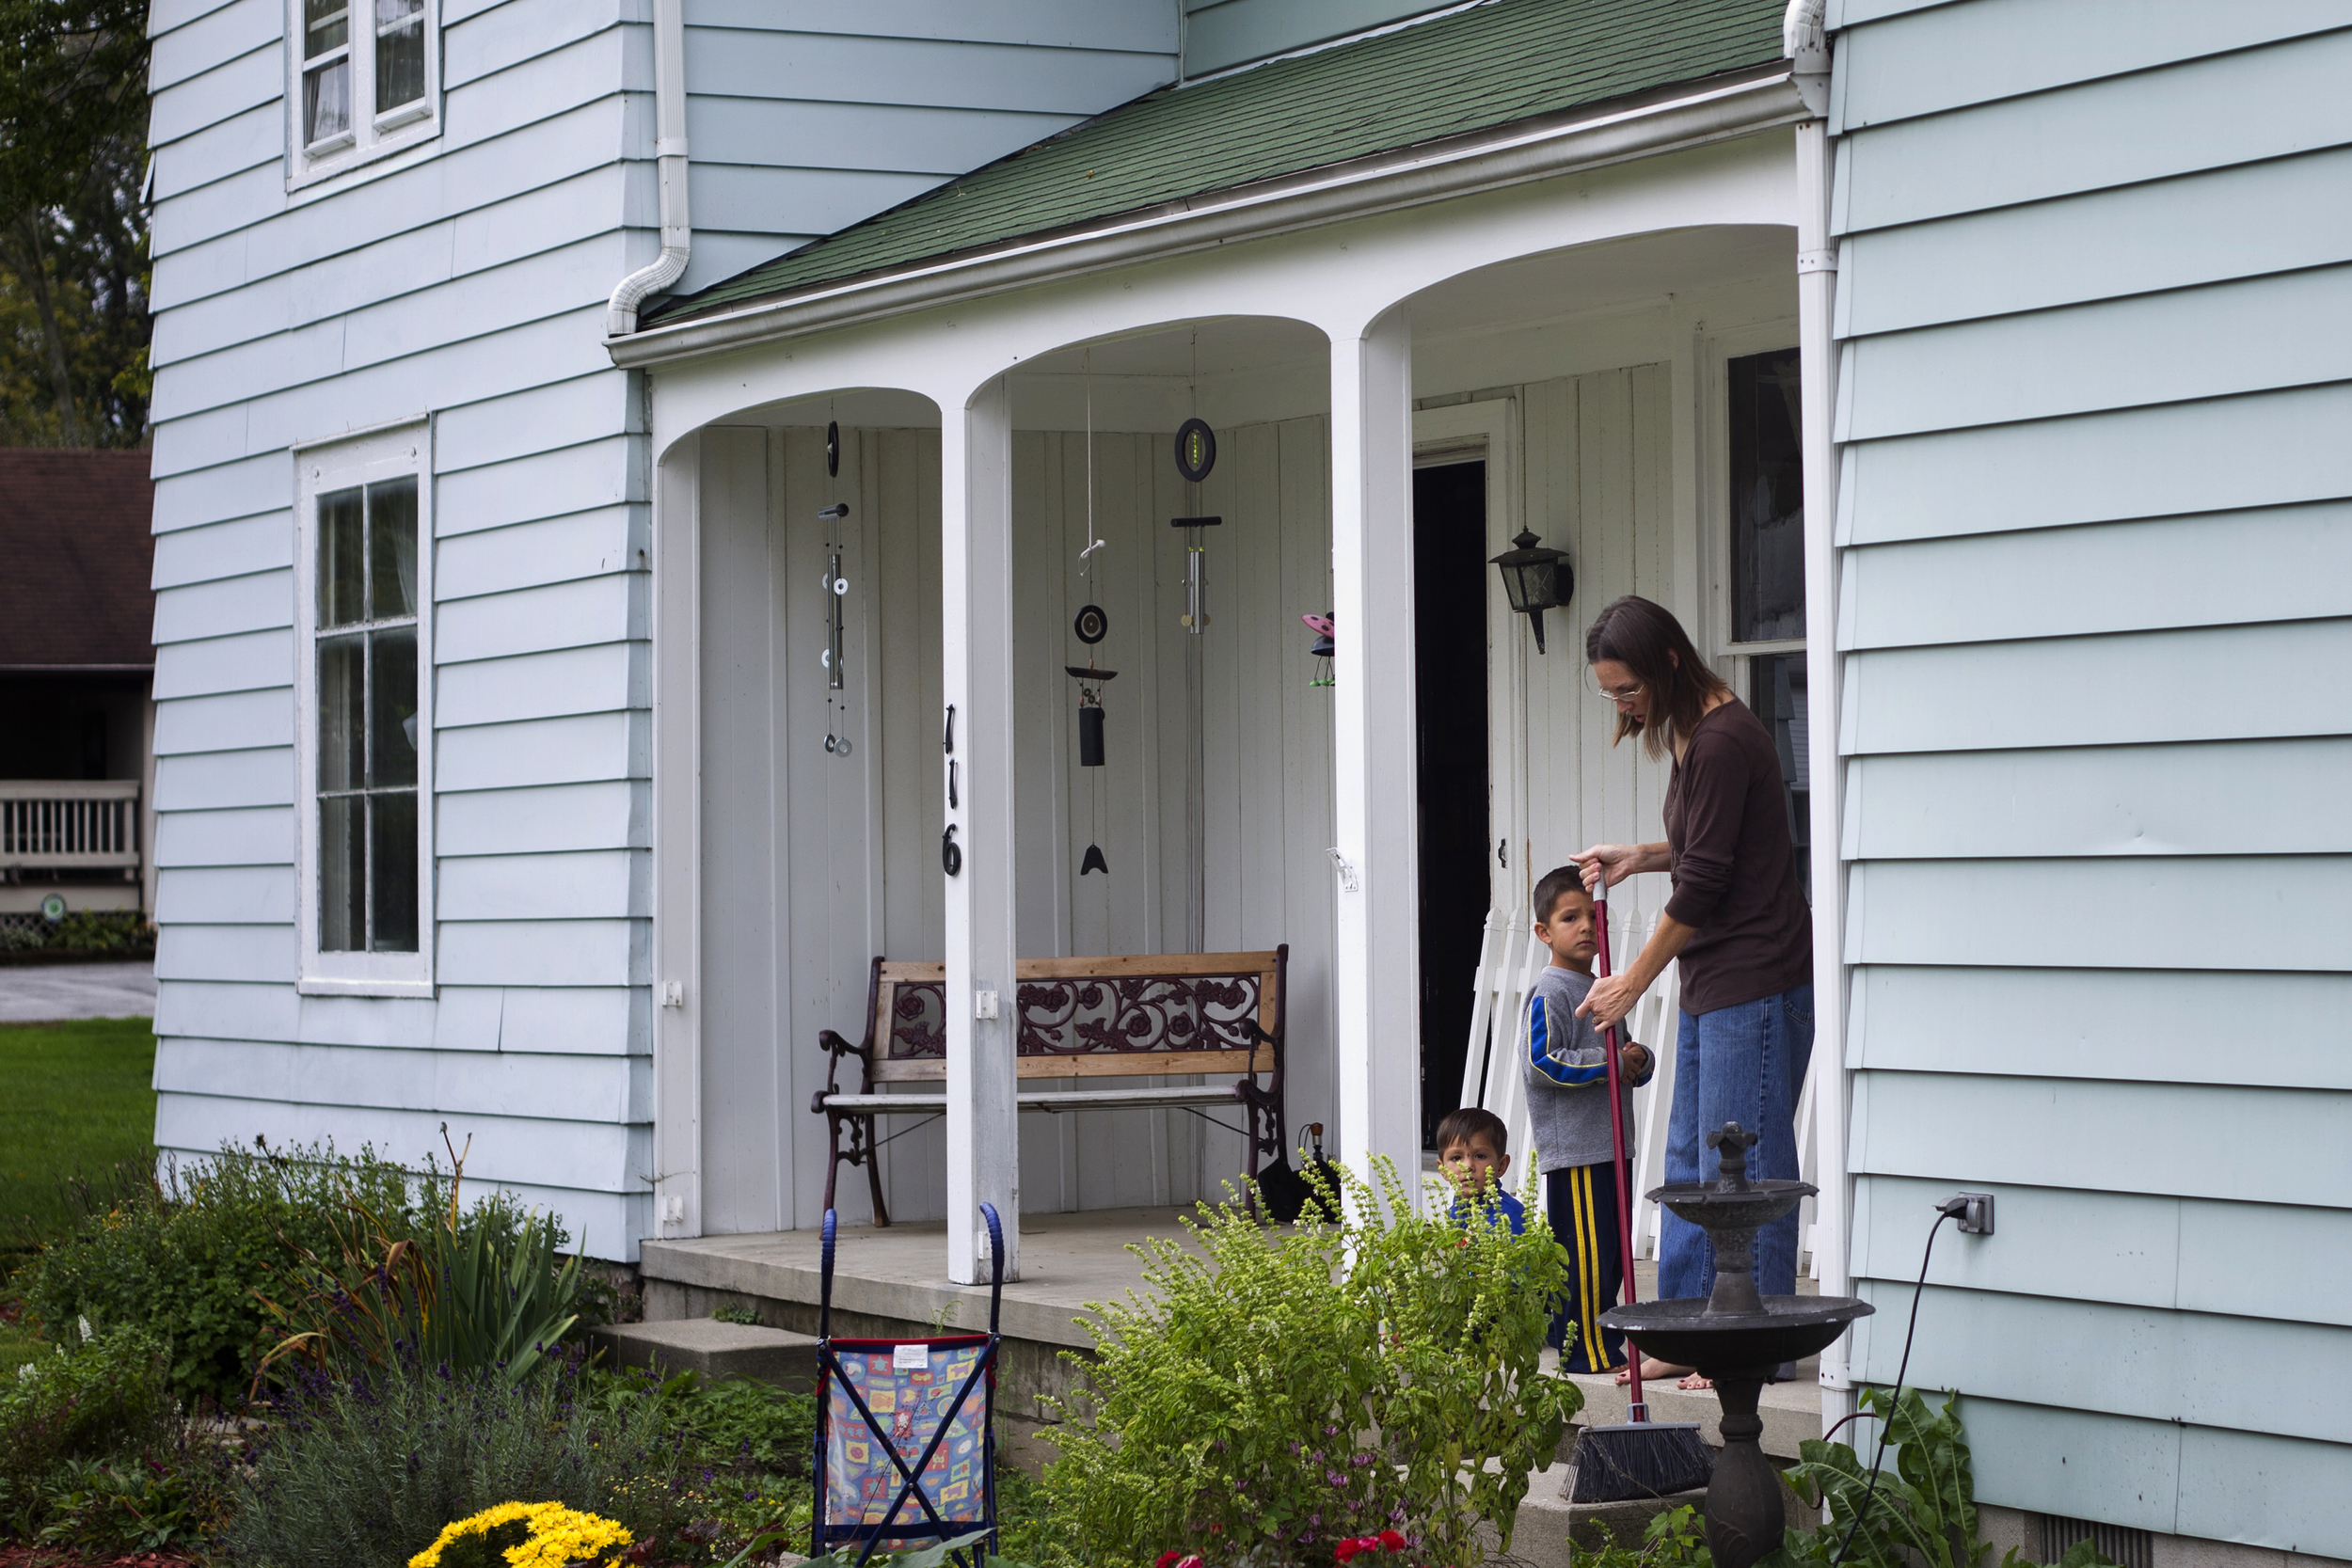 Rebecca Acosta, right, sweeps the front porch of her home in Pemberville as her children play in the yard. Though she said that she, herself, benefits from from some of the policies aimed at helping the poor, she was strongly against increasing taxes on the wealthy to help fund those policies.